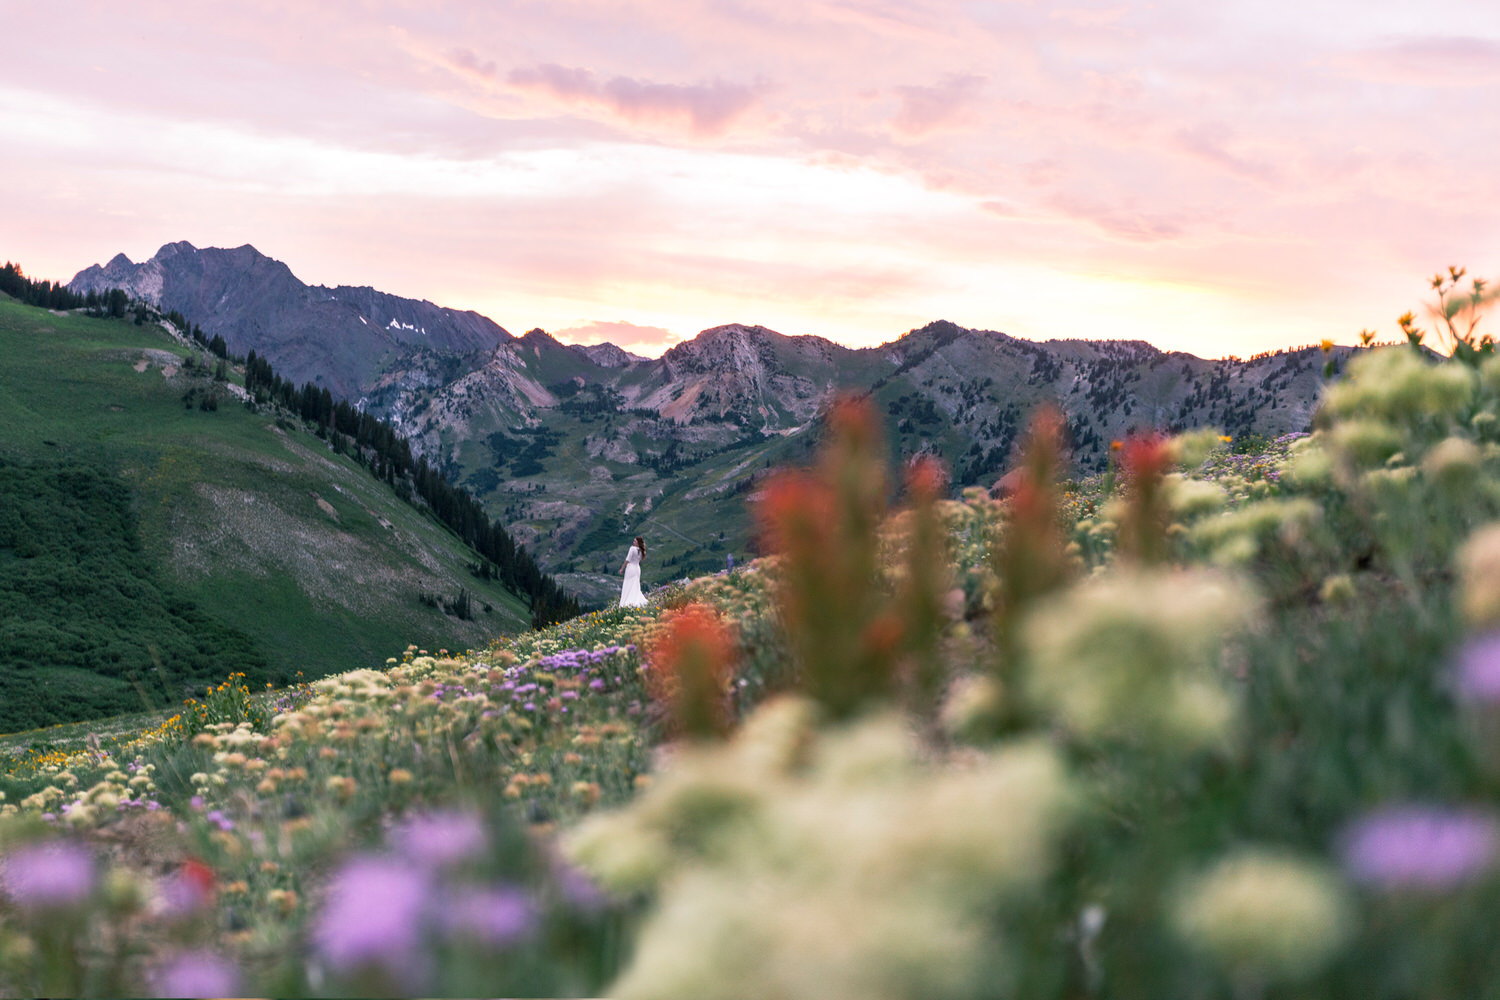 Wildflowers and mountains in Utah